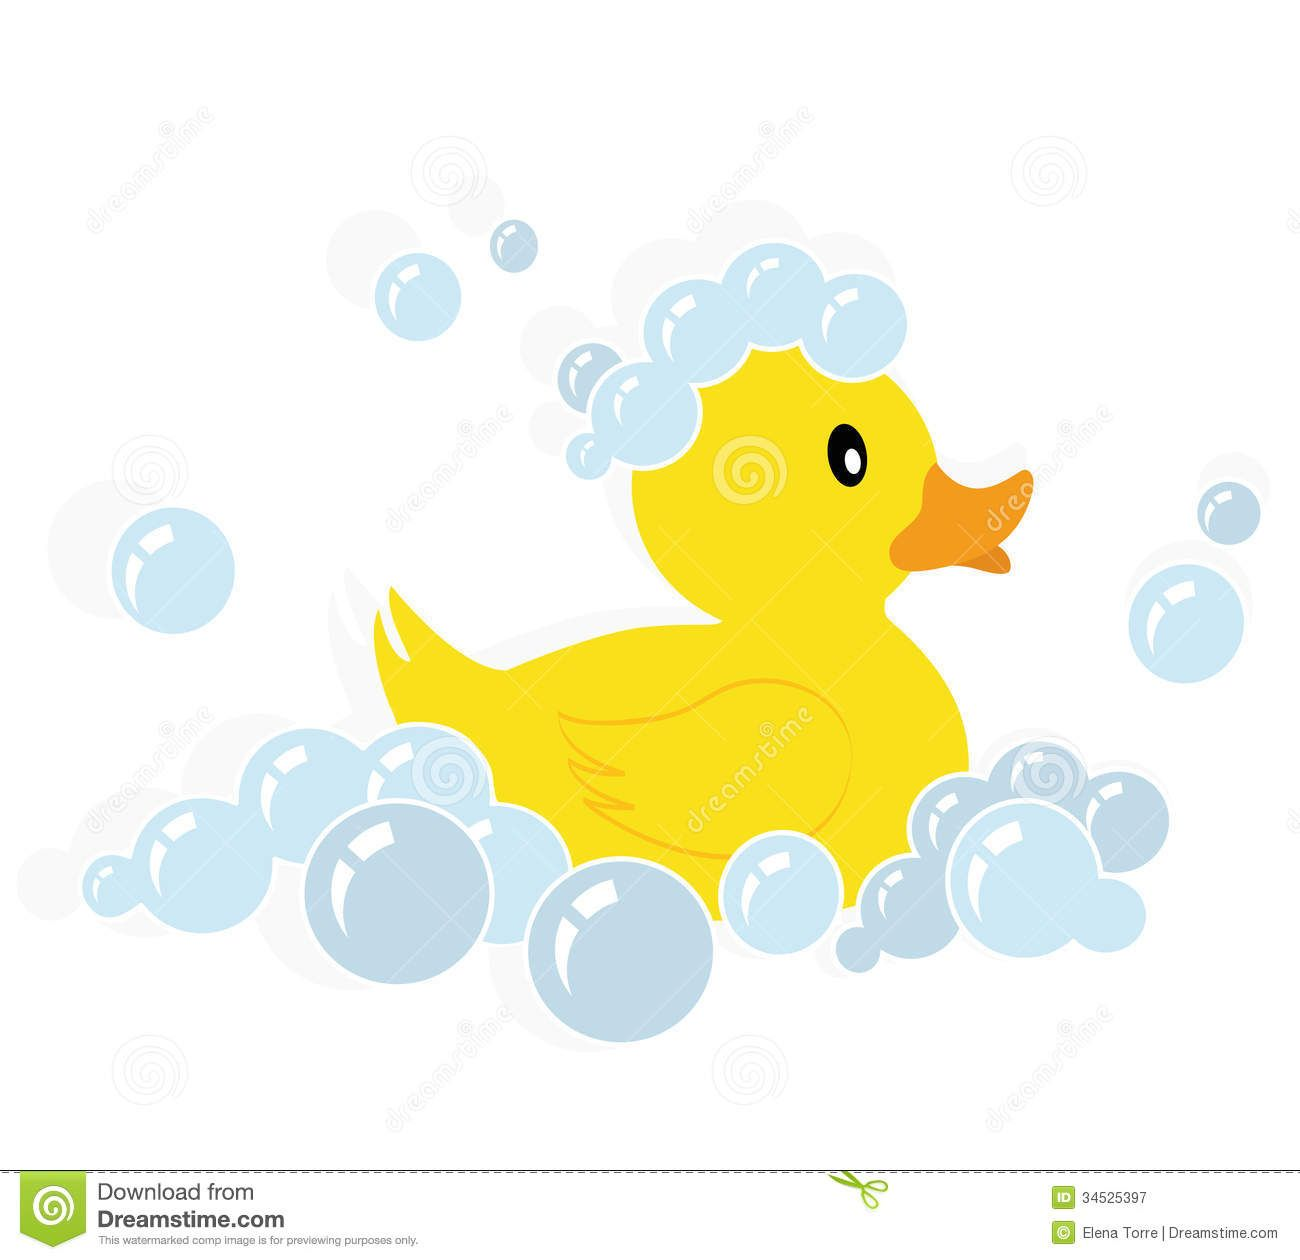 baby ducky vector - Google Search | Vectors | Pinterest | Babies ...